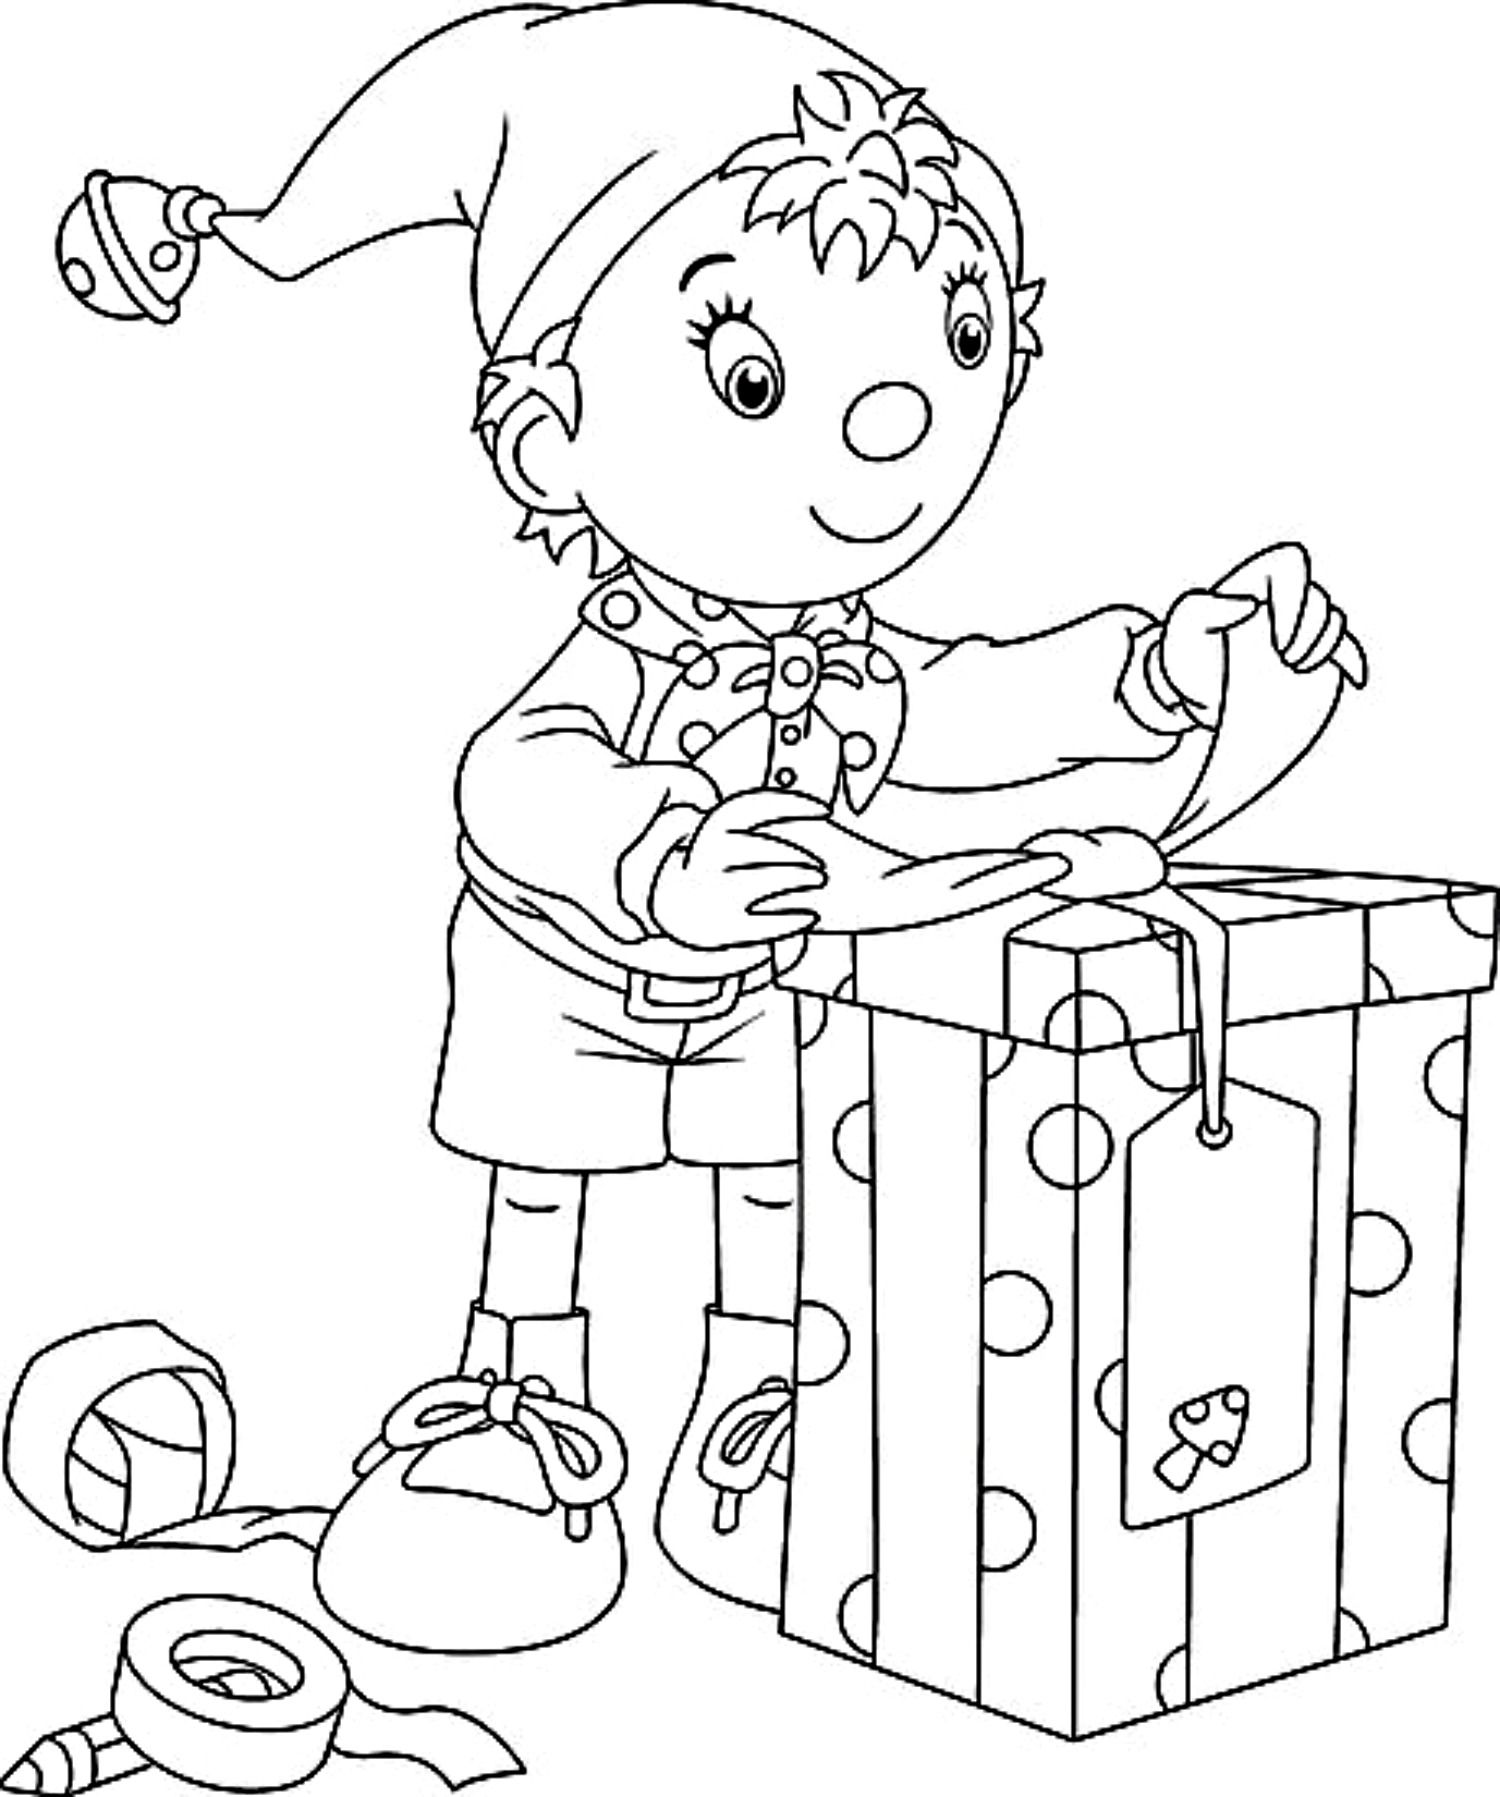 Free Printable Christmas Elf Coloring Pages With CHRISTMAS COLORING PAGE Santa Song And